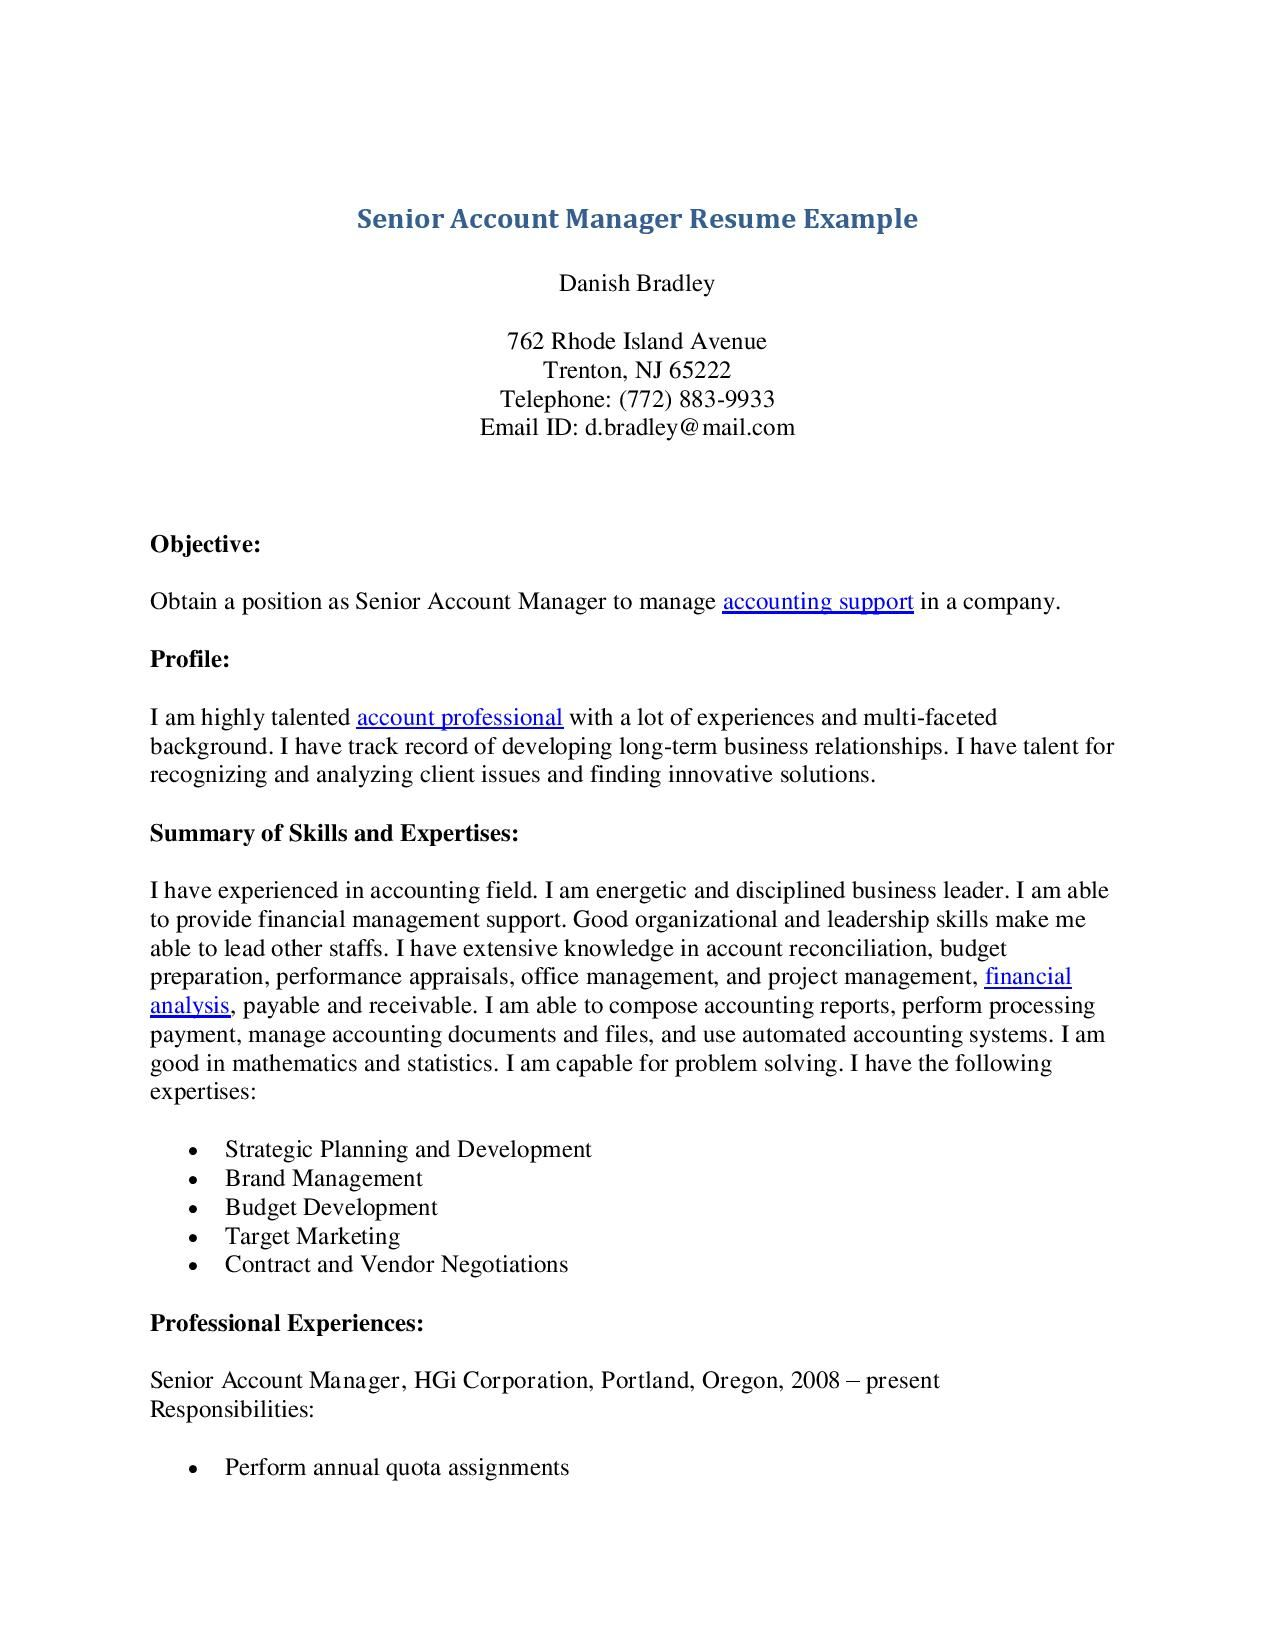 Account Manager Resume Senior Account Manager Resume Example  Senior Account Manager